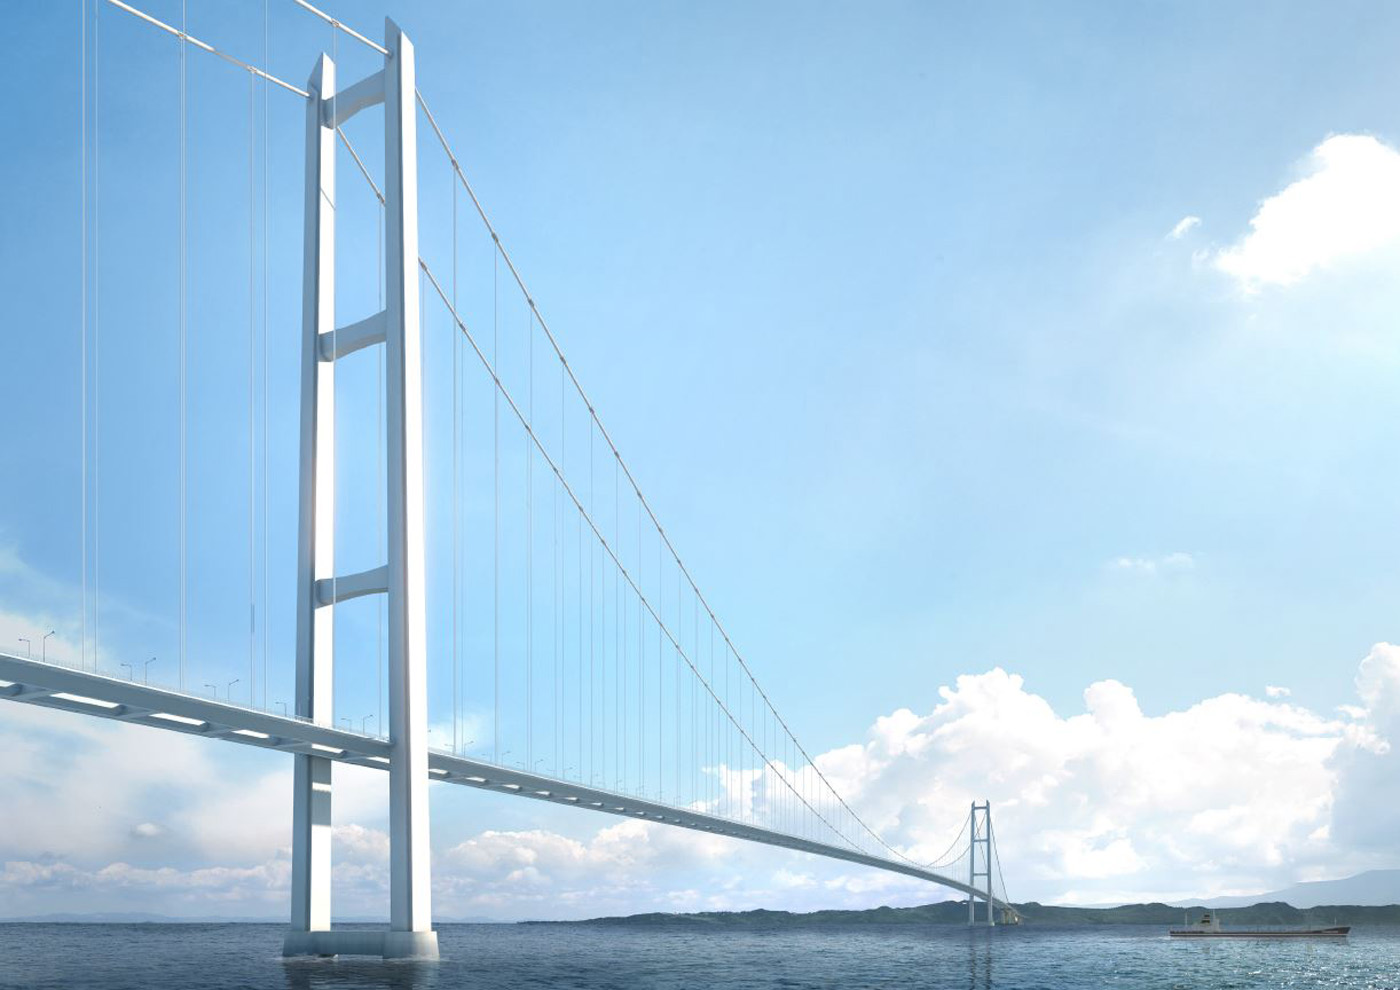 POSCO supply 35000 tons of thick plates for canakkale 1915 bridge